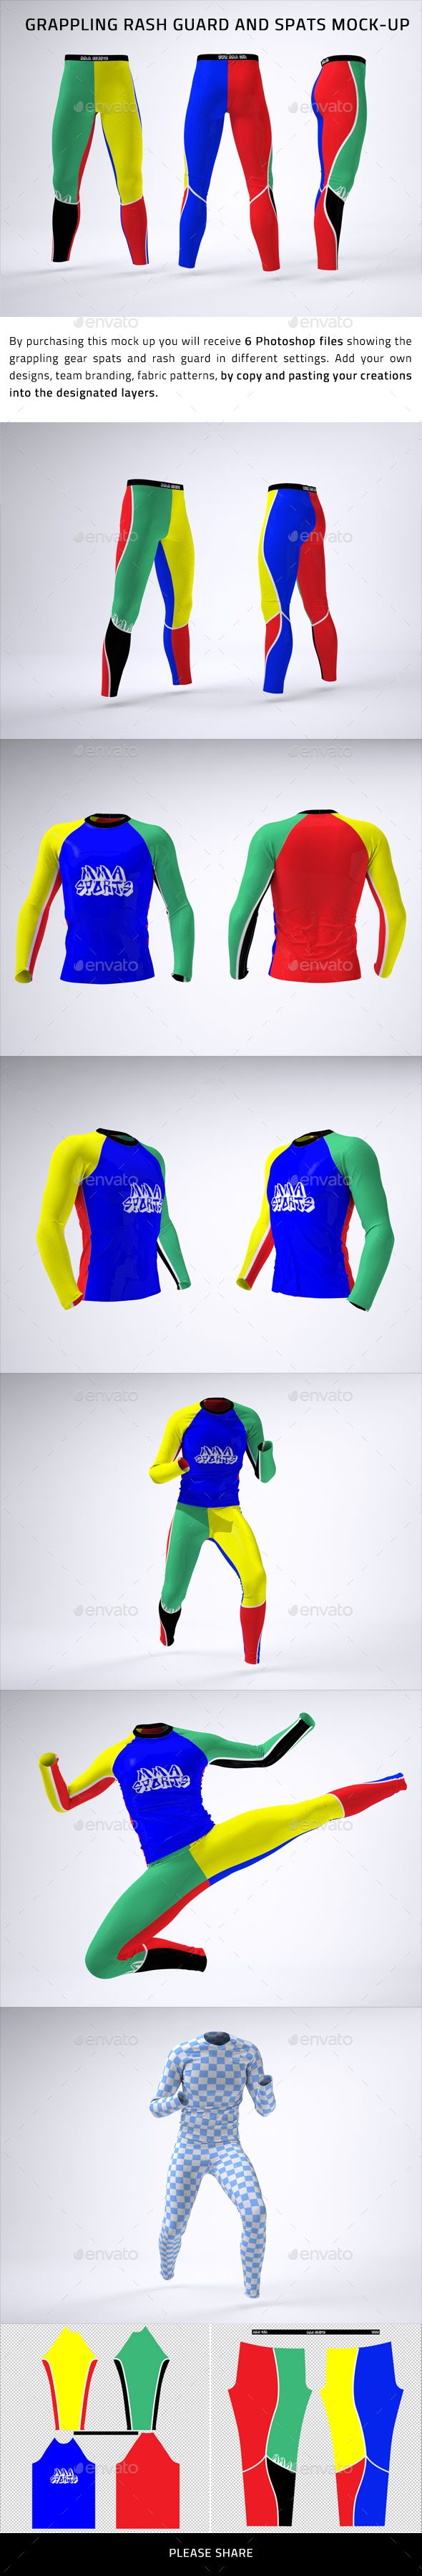 Grappling Rash Guard and Spats Mock-Up | Mockups | Mockup